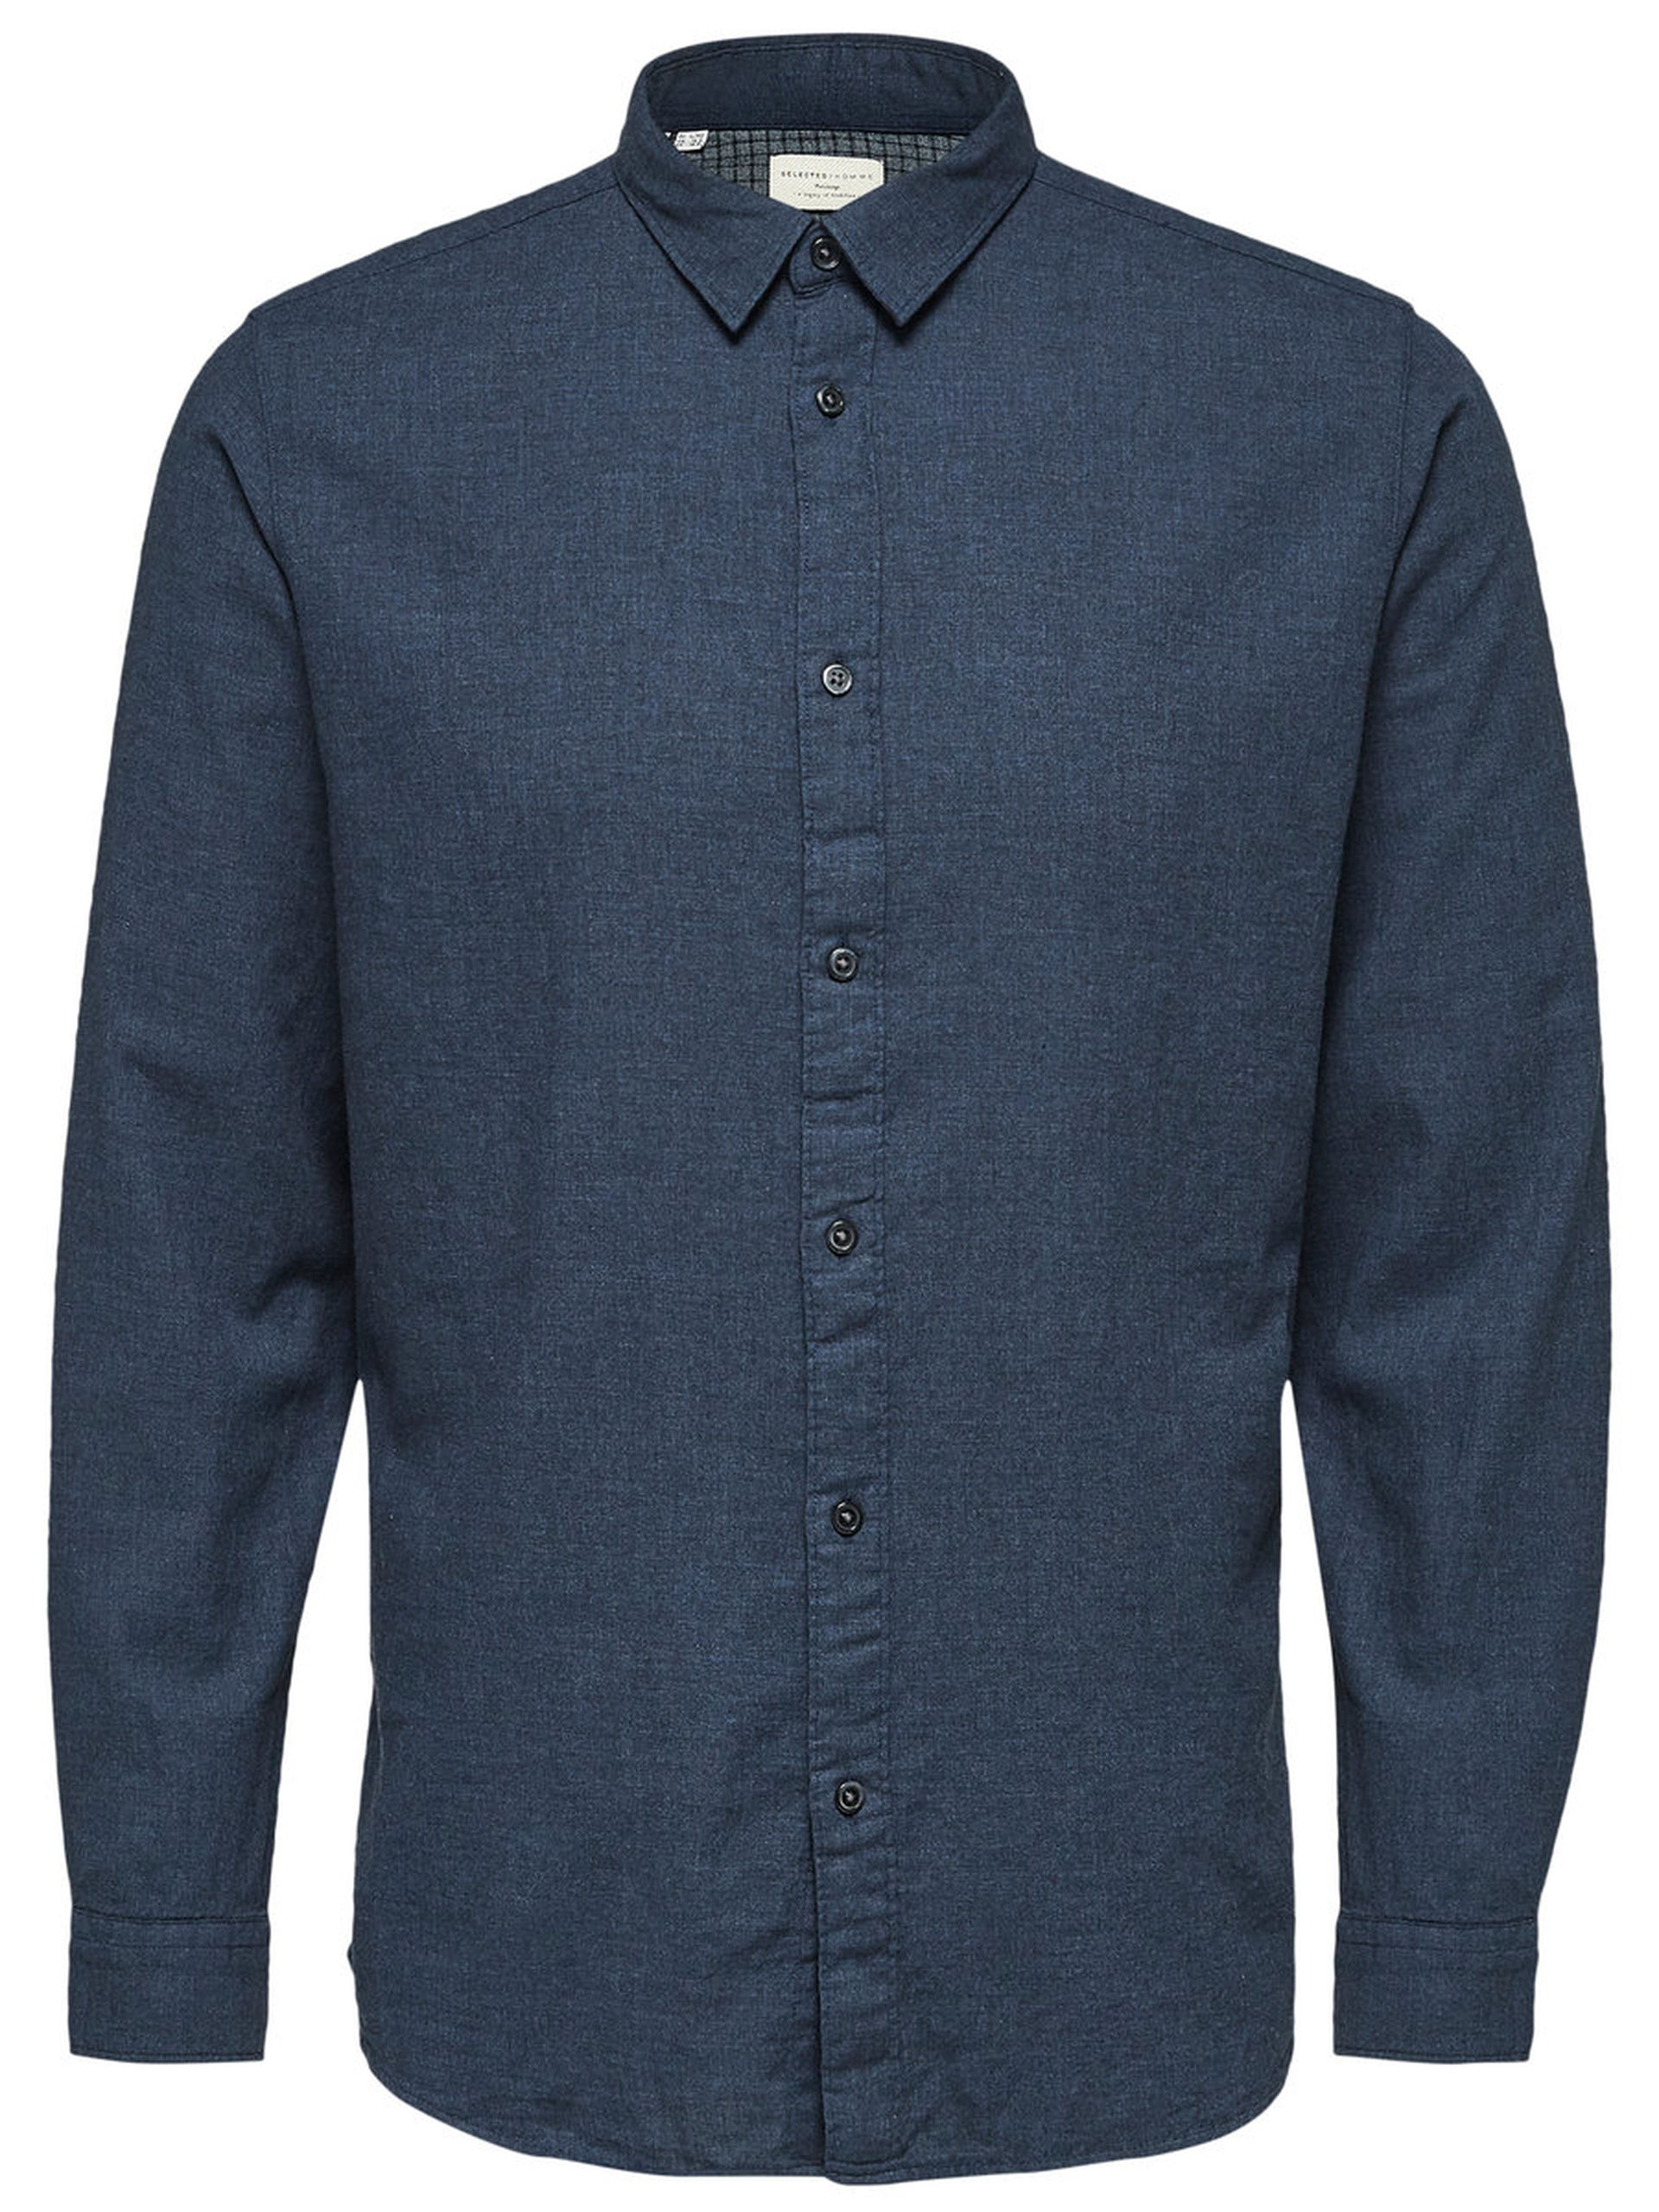 Selected DARK NAVY Long Sleeve Cotton Shirt